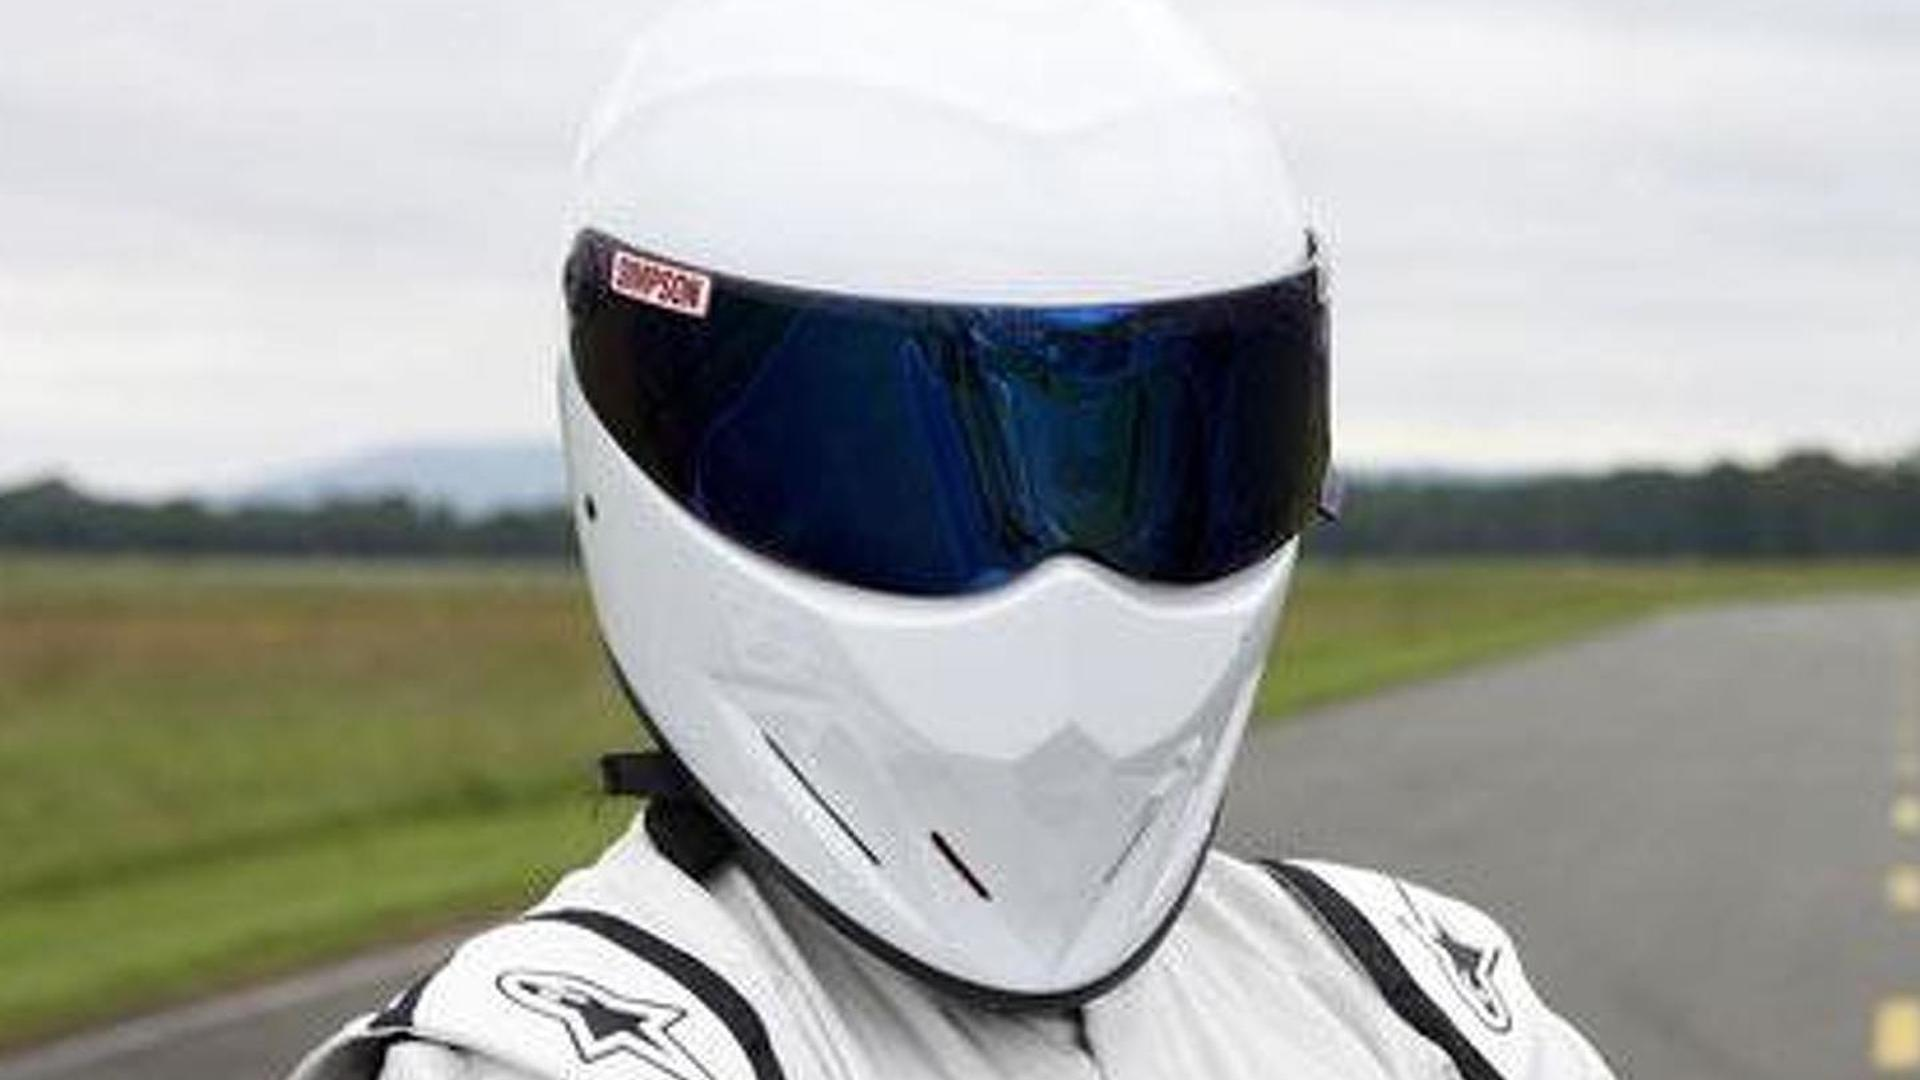 Top Gear to hold auditions for new co-hosts, fans invited to apply